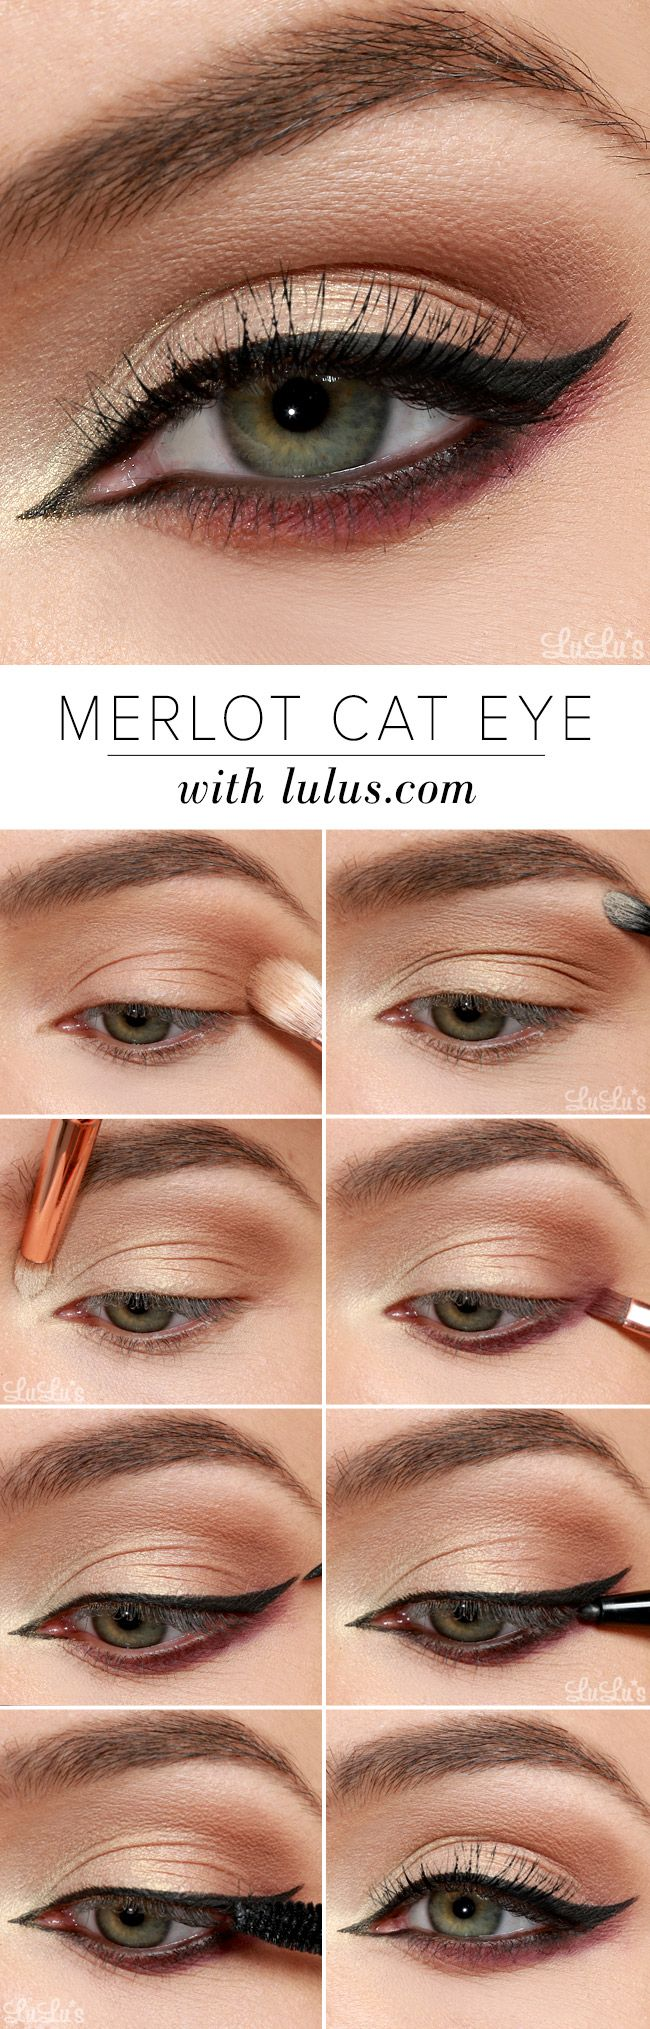 Purr-fect your winged cat eye look all while adding a fun pop of color with our Merlot Cat Eye Makeup Tutorial! Shop our favorite products…